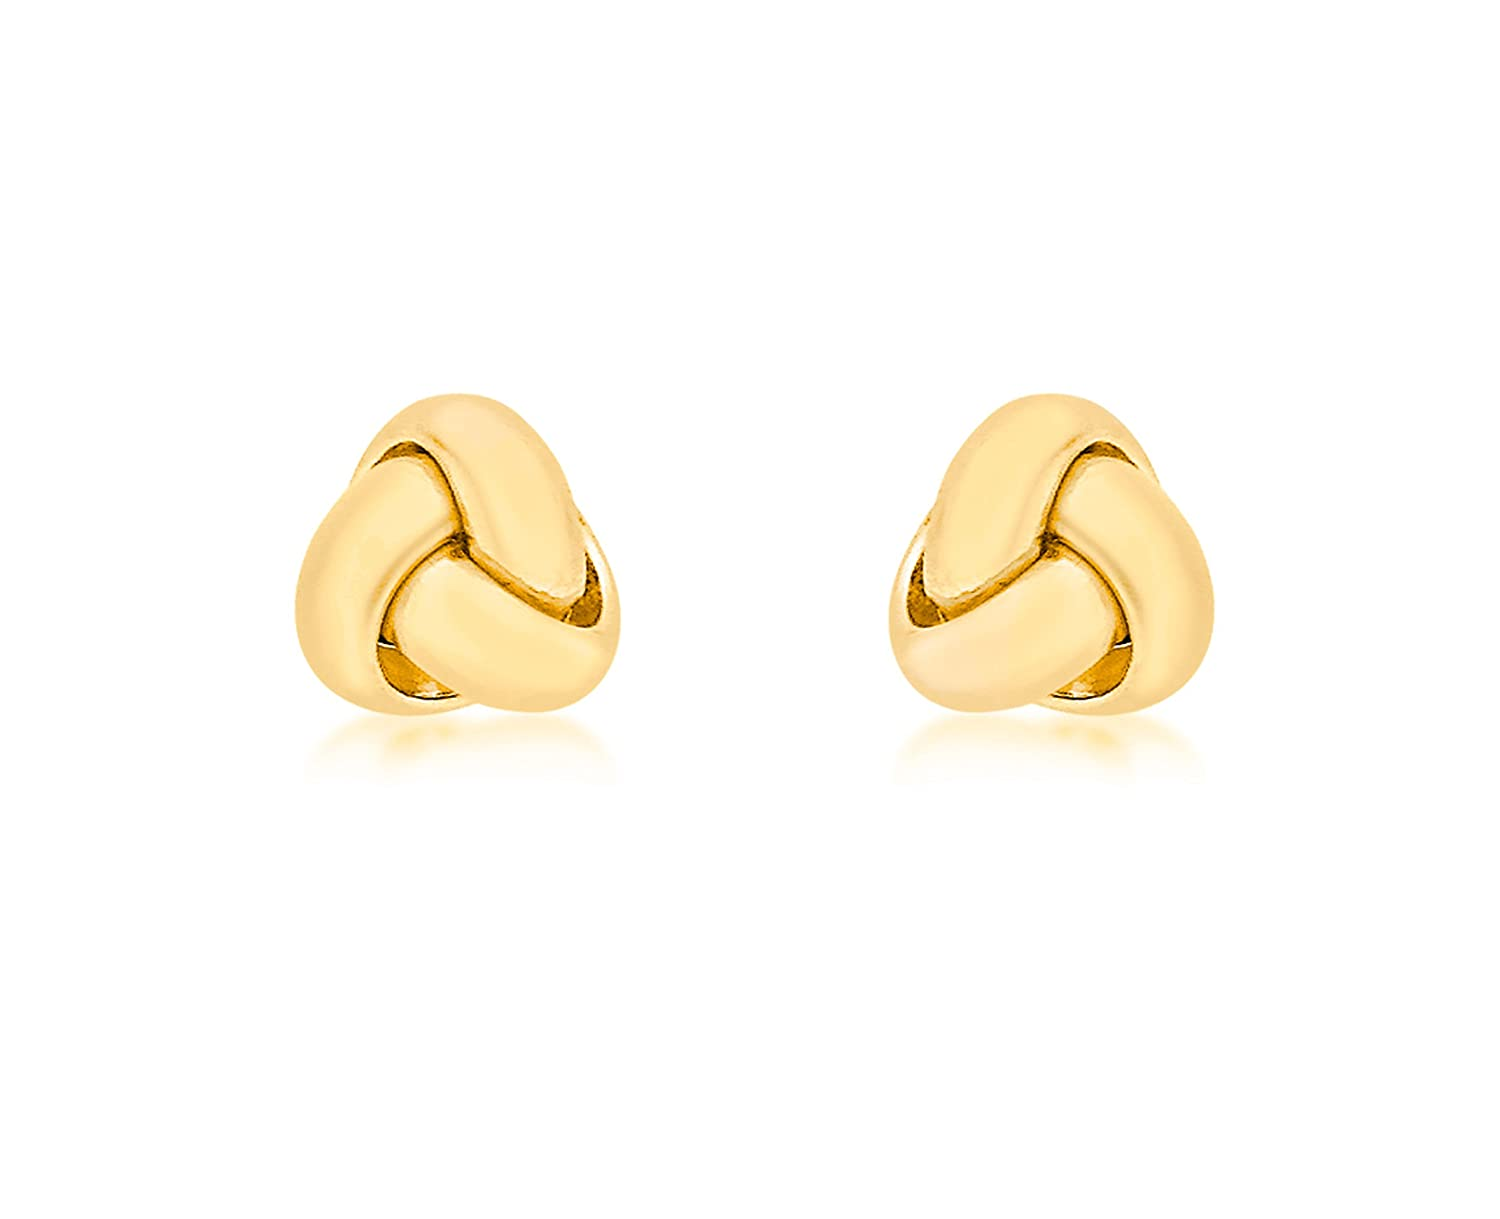 7789a1c77 Carissima Gold Women's 18 ct Yellow Gold 7 mm Triple Knot Stud Earrings:  Amazon.co.uk: Jewellery